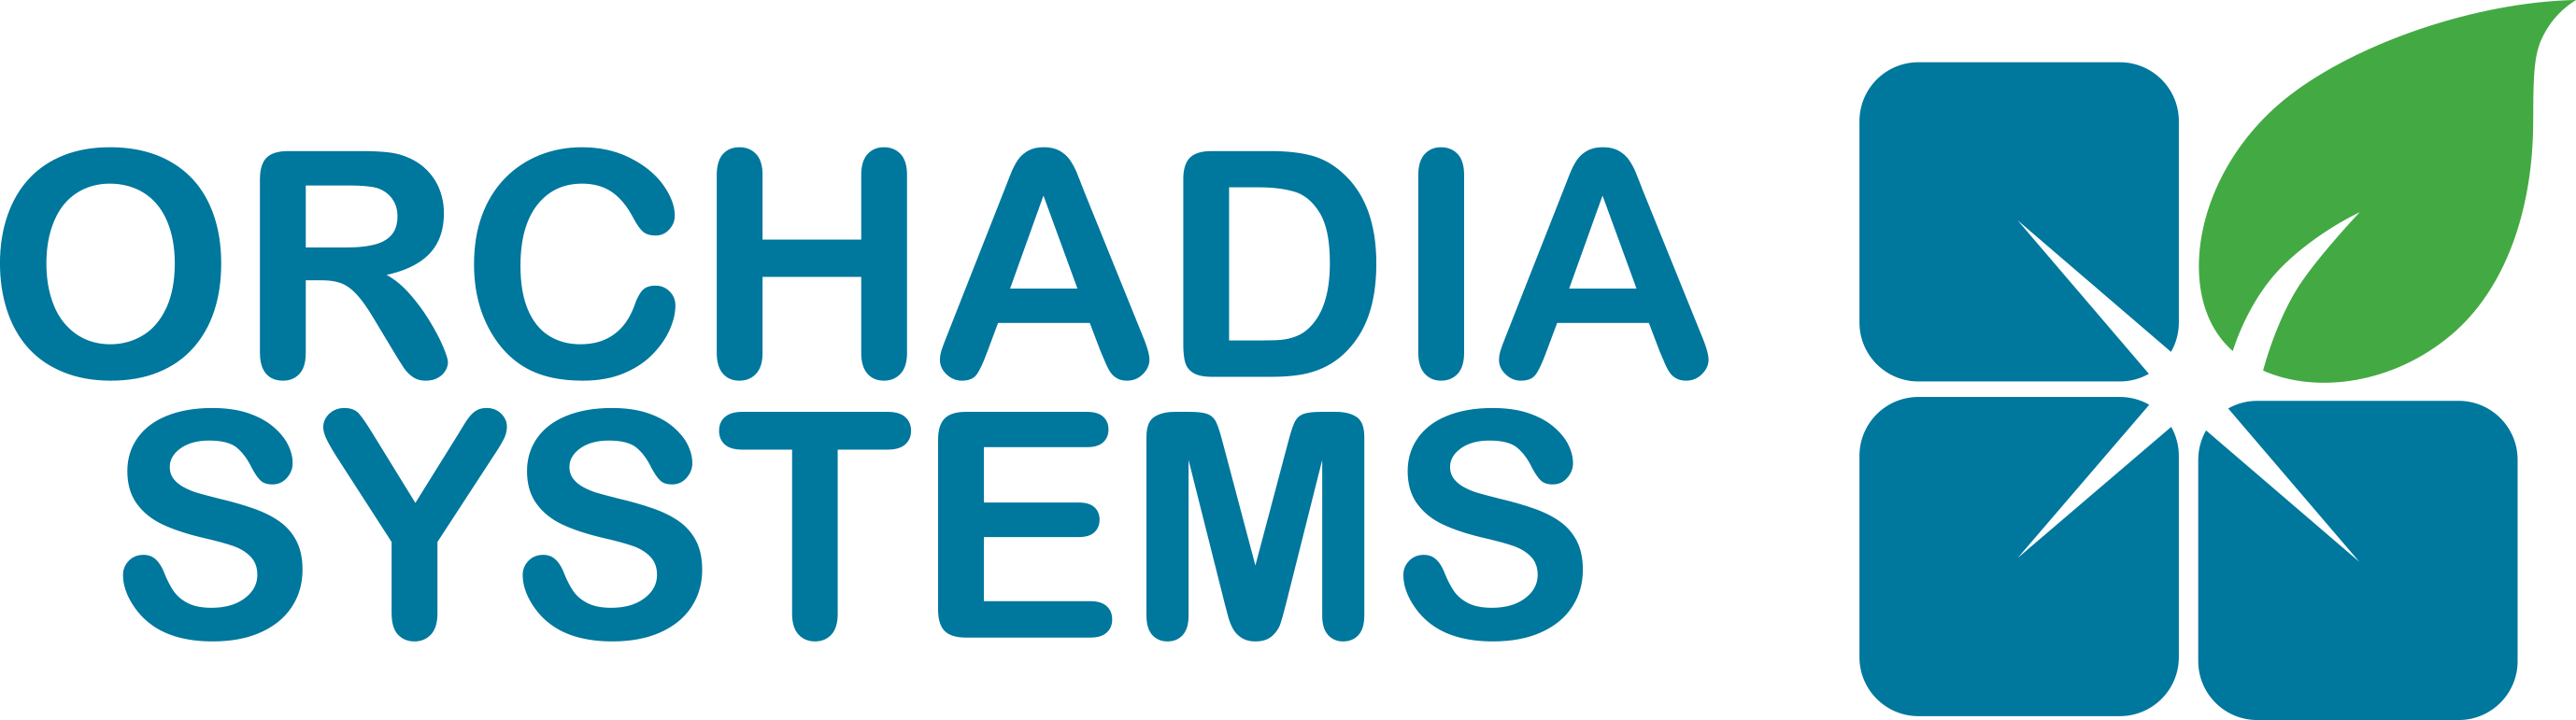 Orchadia Systems